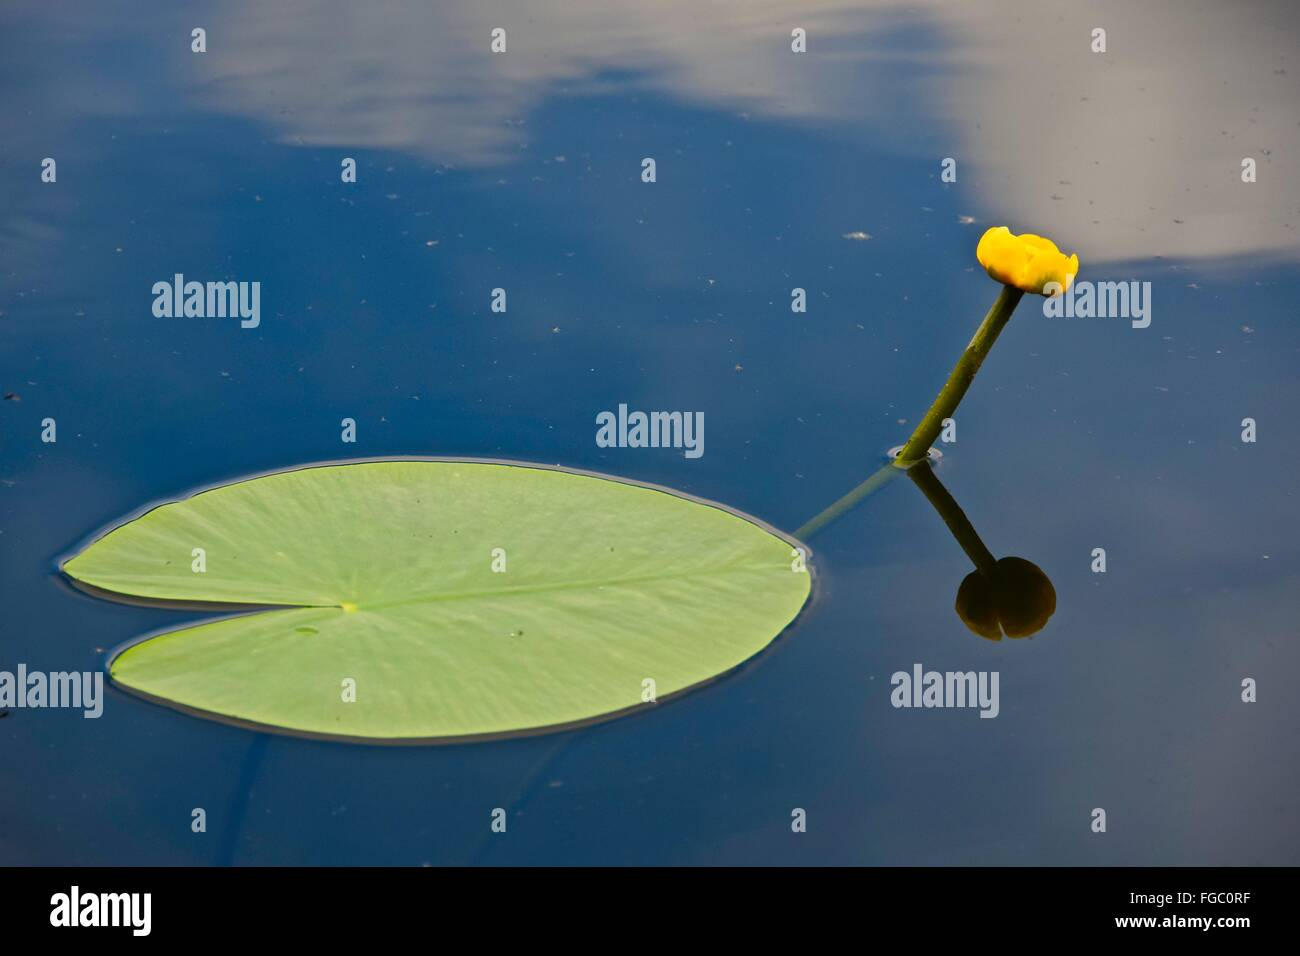 Lily Pad Floating On Water Stock Photos & Lily Pad Floating On Water ...